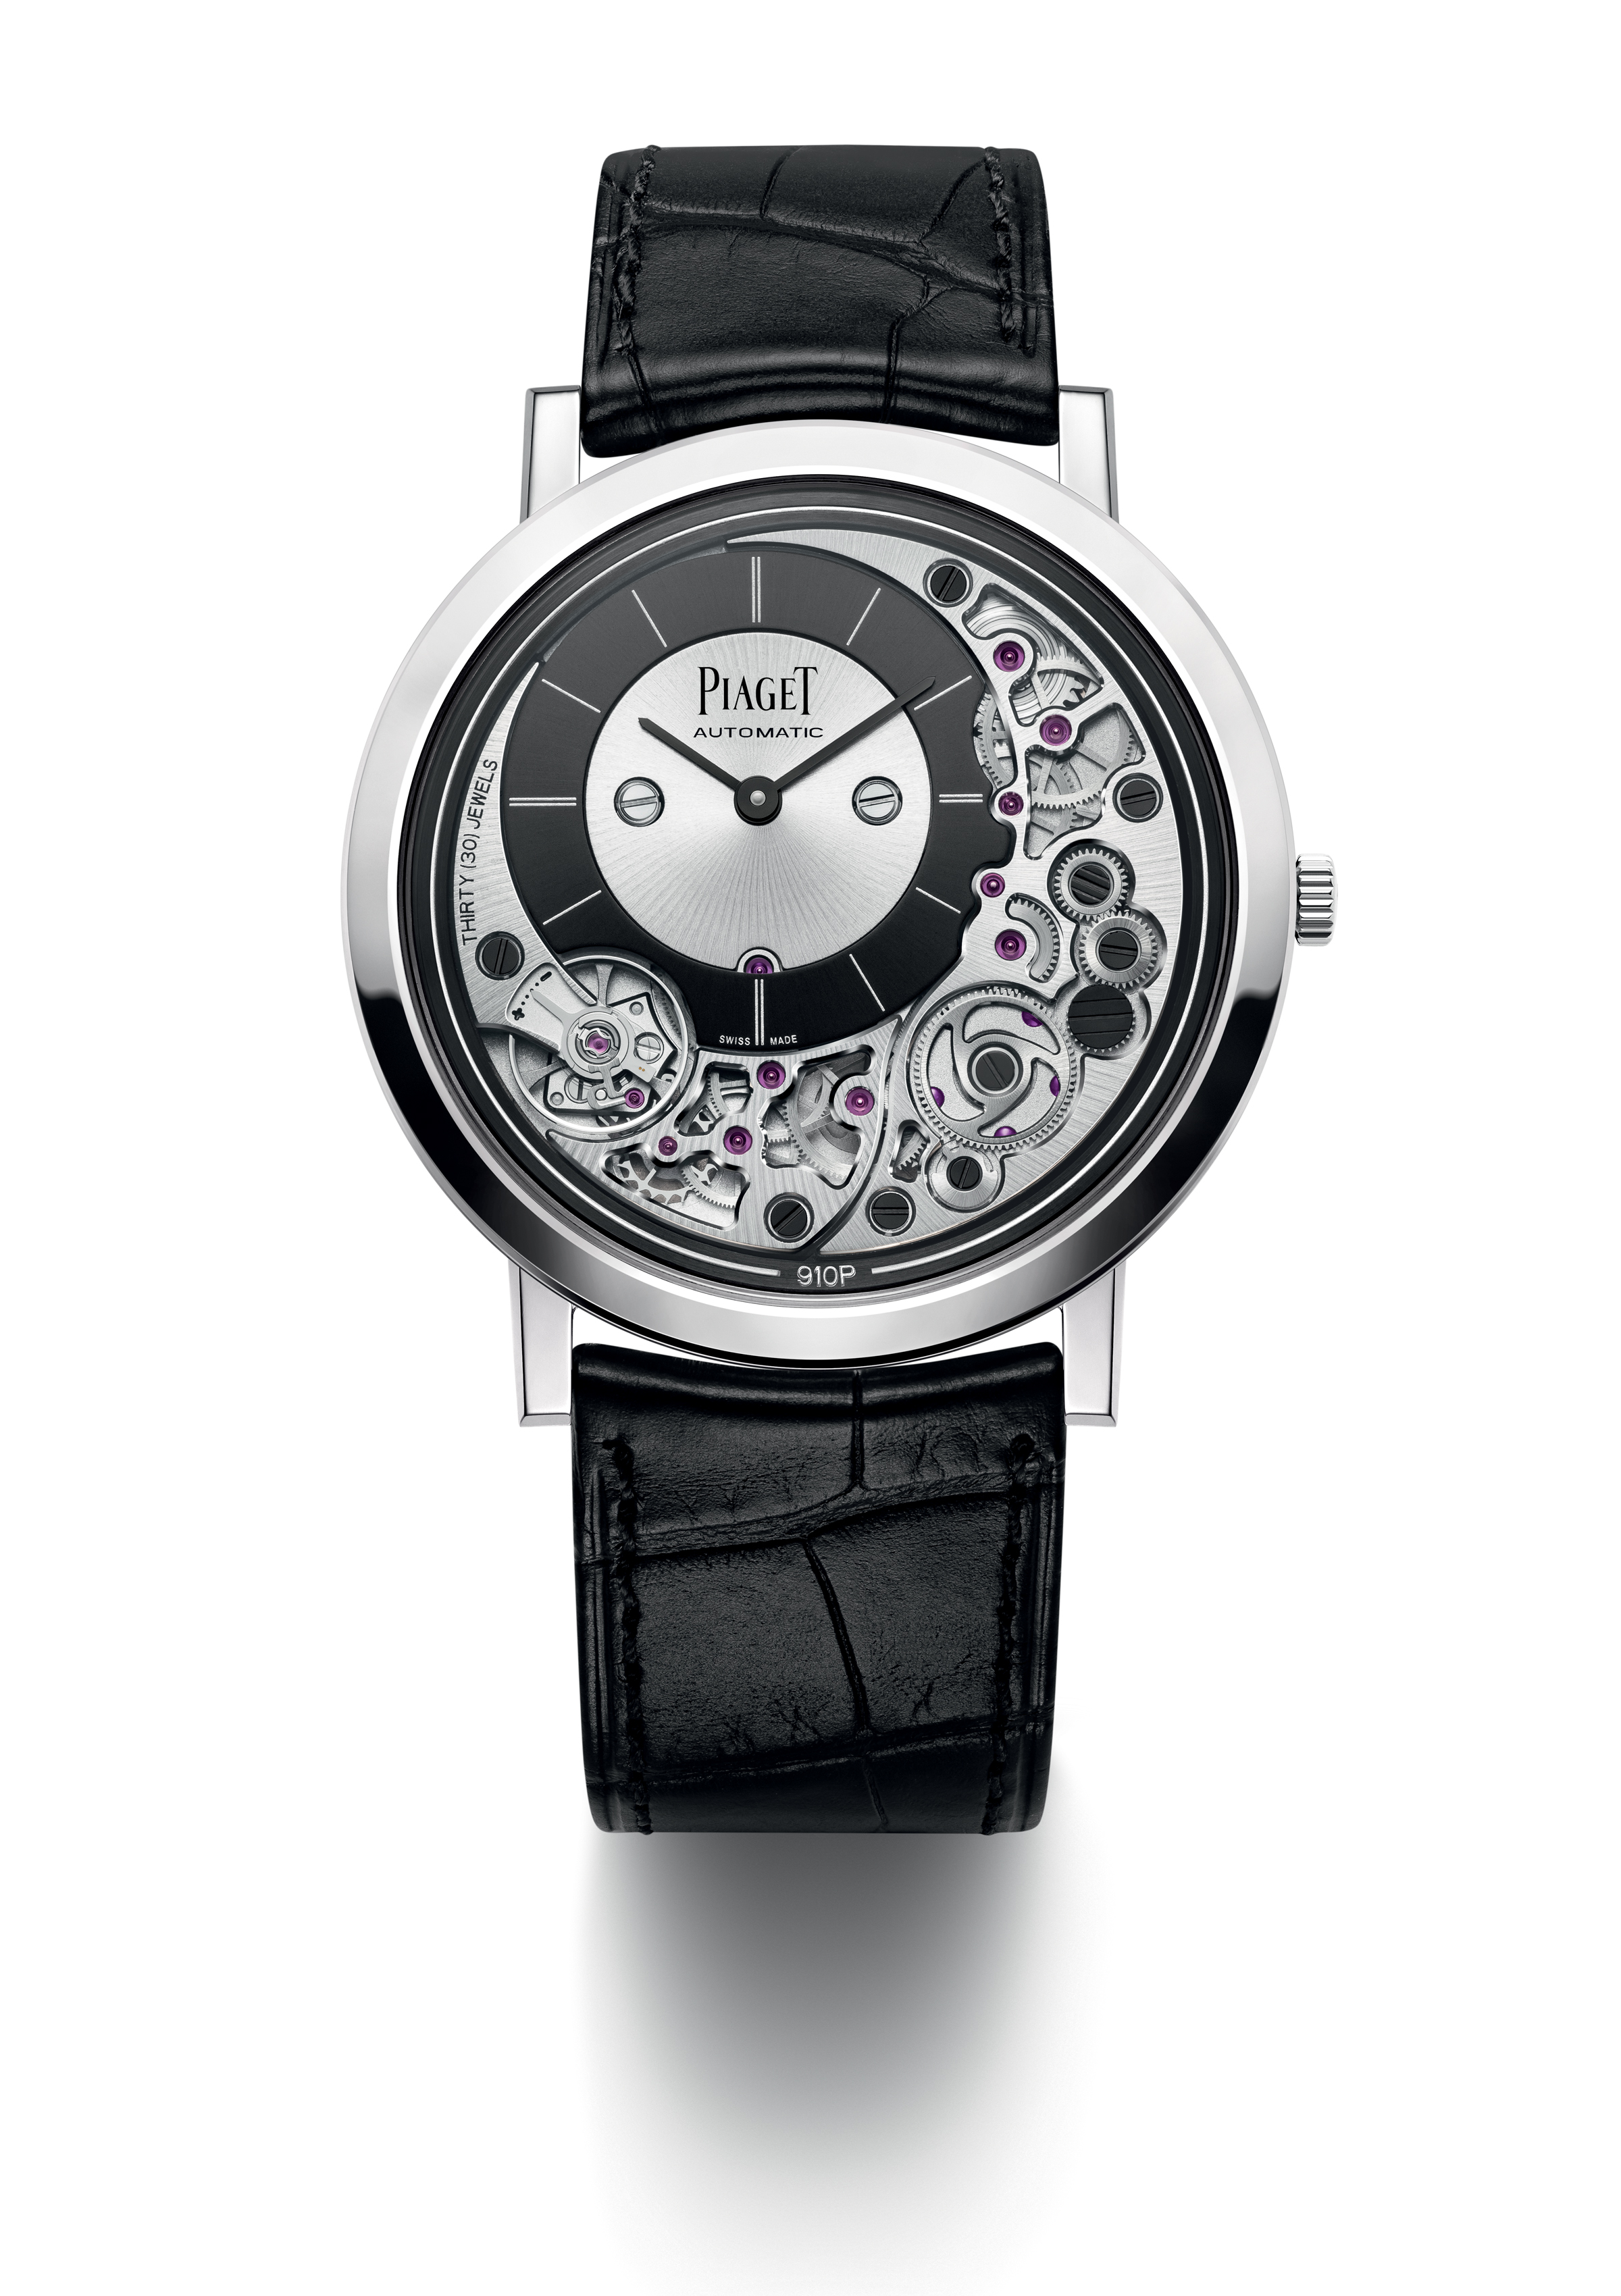 Pre SIHH 2018: Piaget sets new world records for ultra-thin with the Piaget Altiplano Ultimate watch.